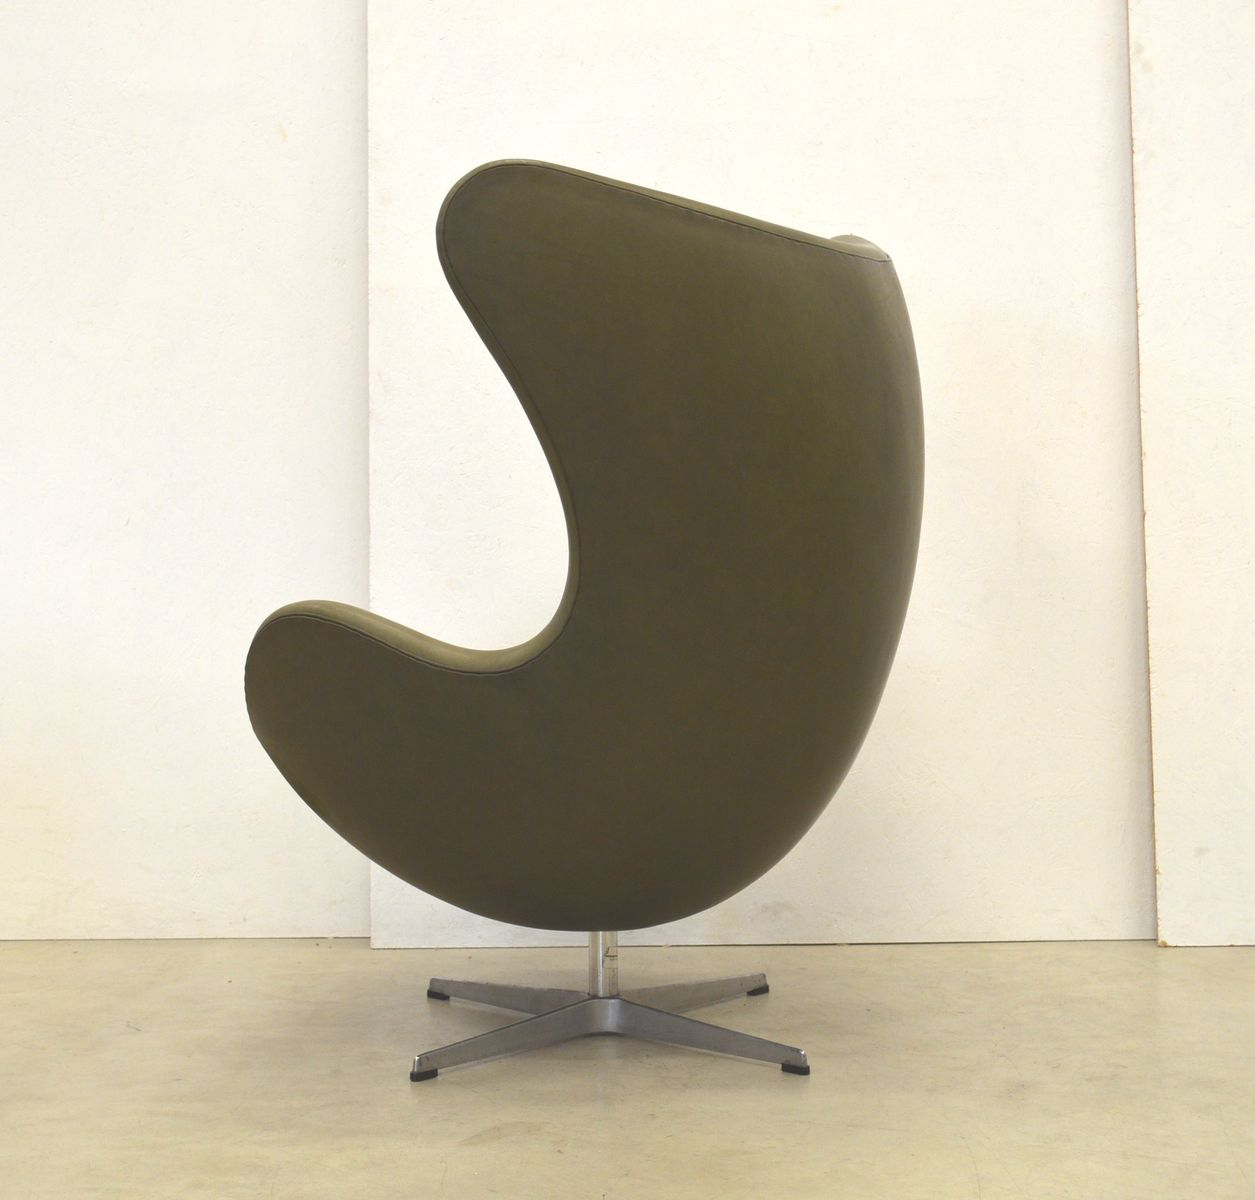 khaki egg chair von arne jacobsen f r fritz hansen 1970er bei pamono kaufen. Black Bedroom Furniture Sets. Home Design Ideas